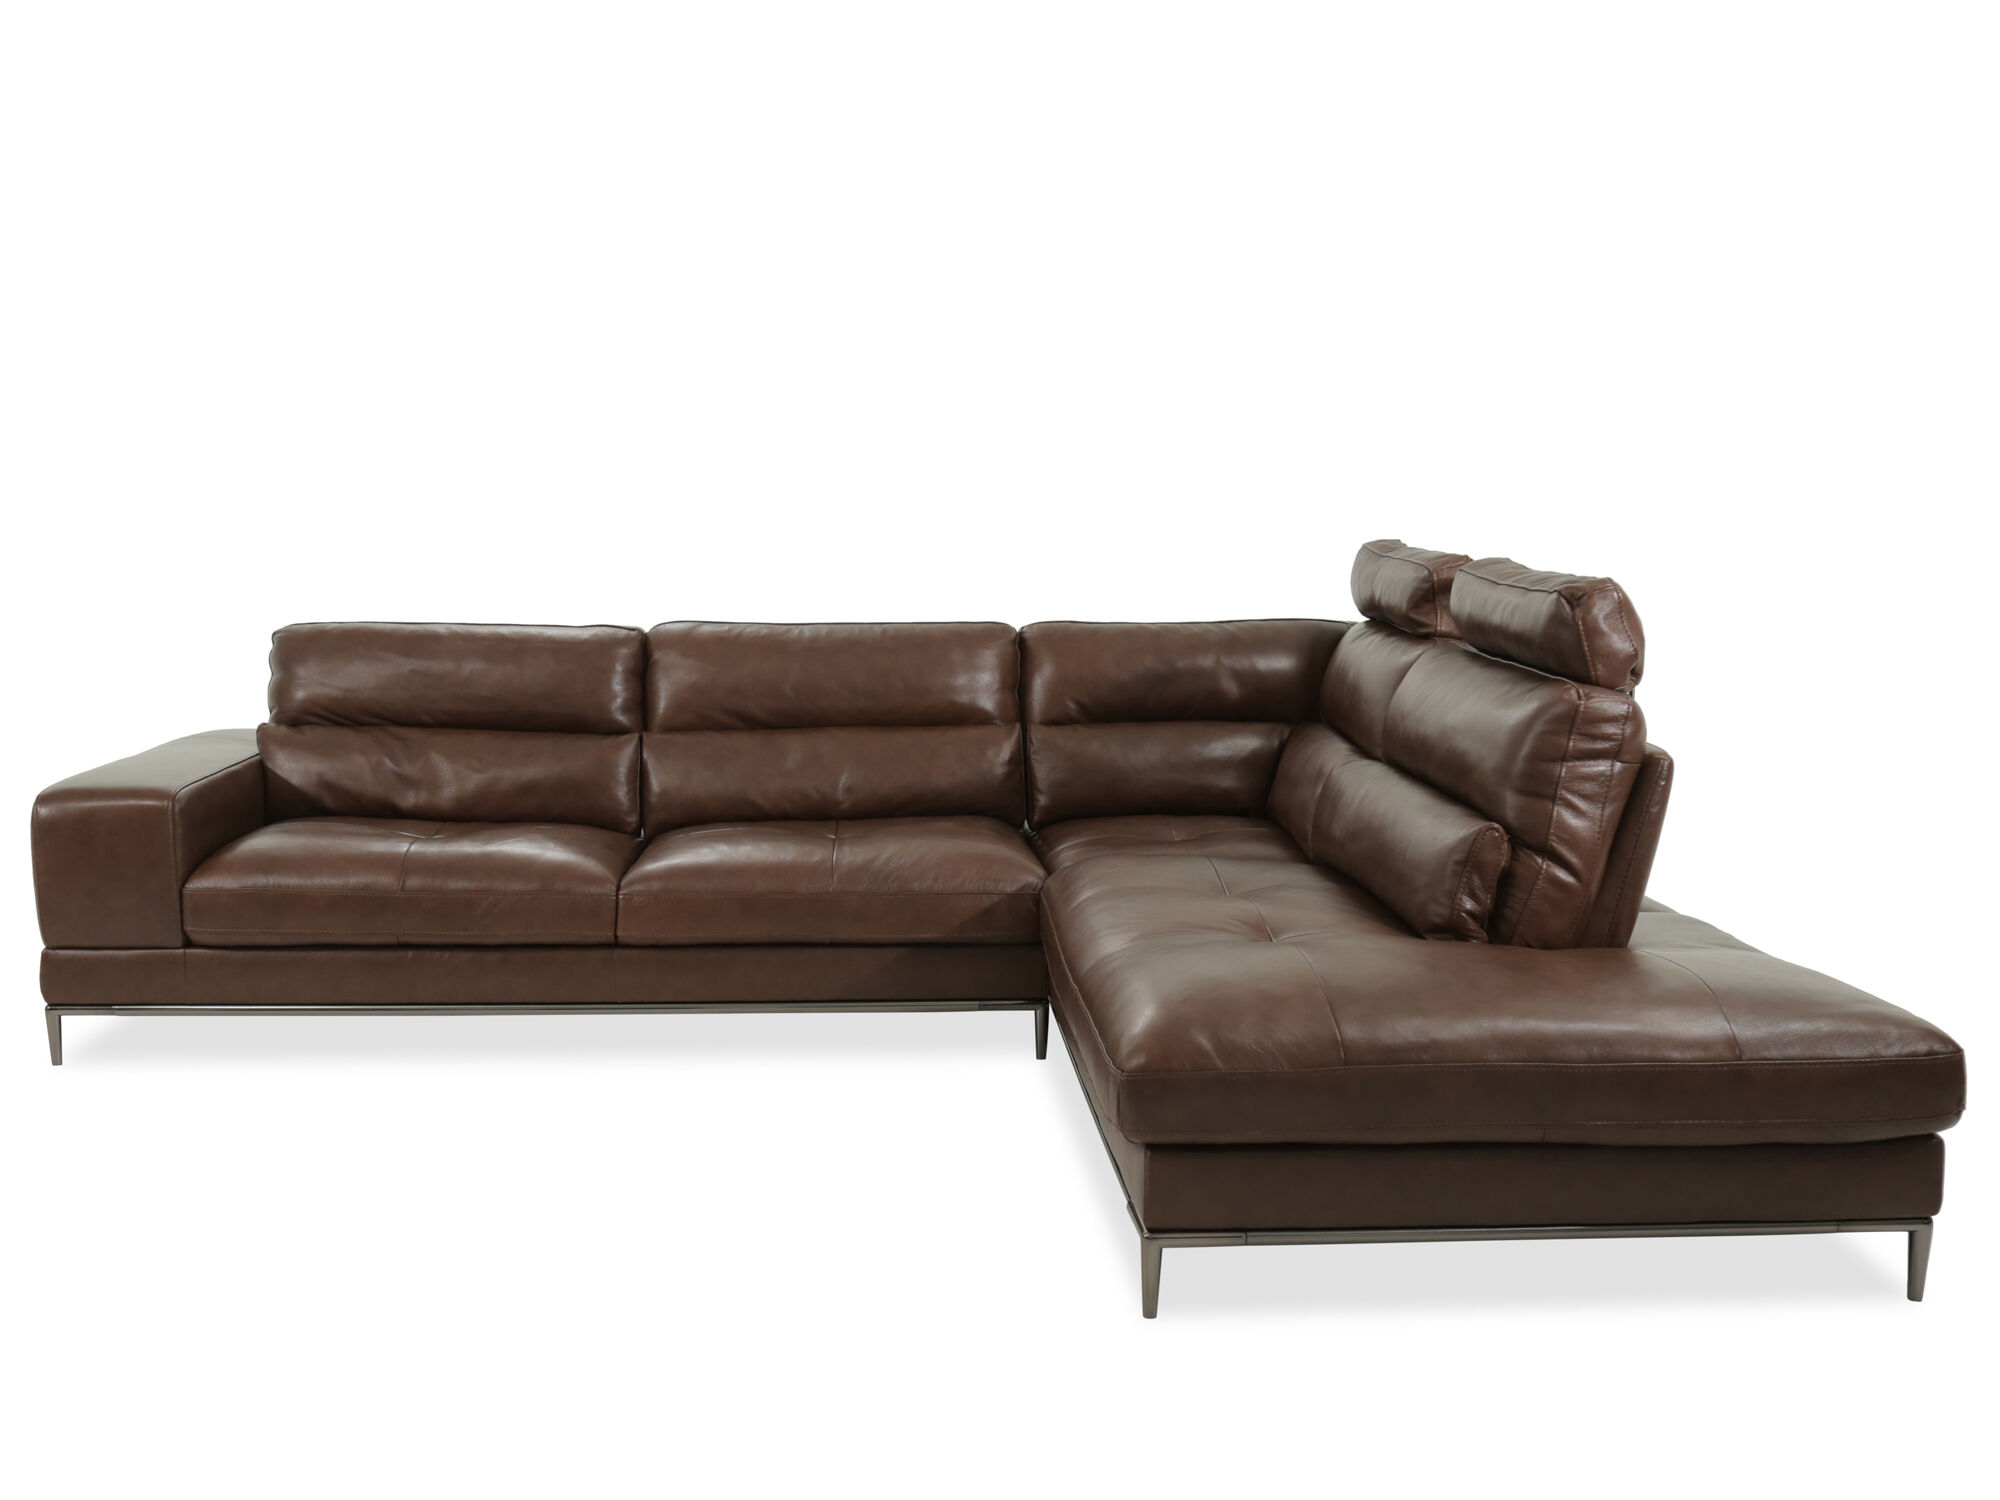 TwoPiece Leather Sectional in Brown Mathis Brothers Furniture